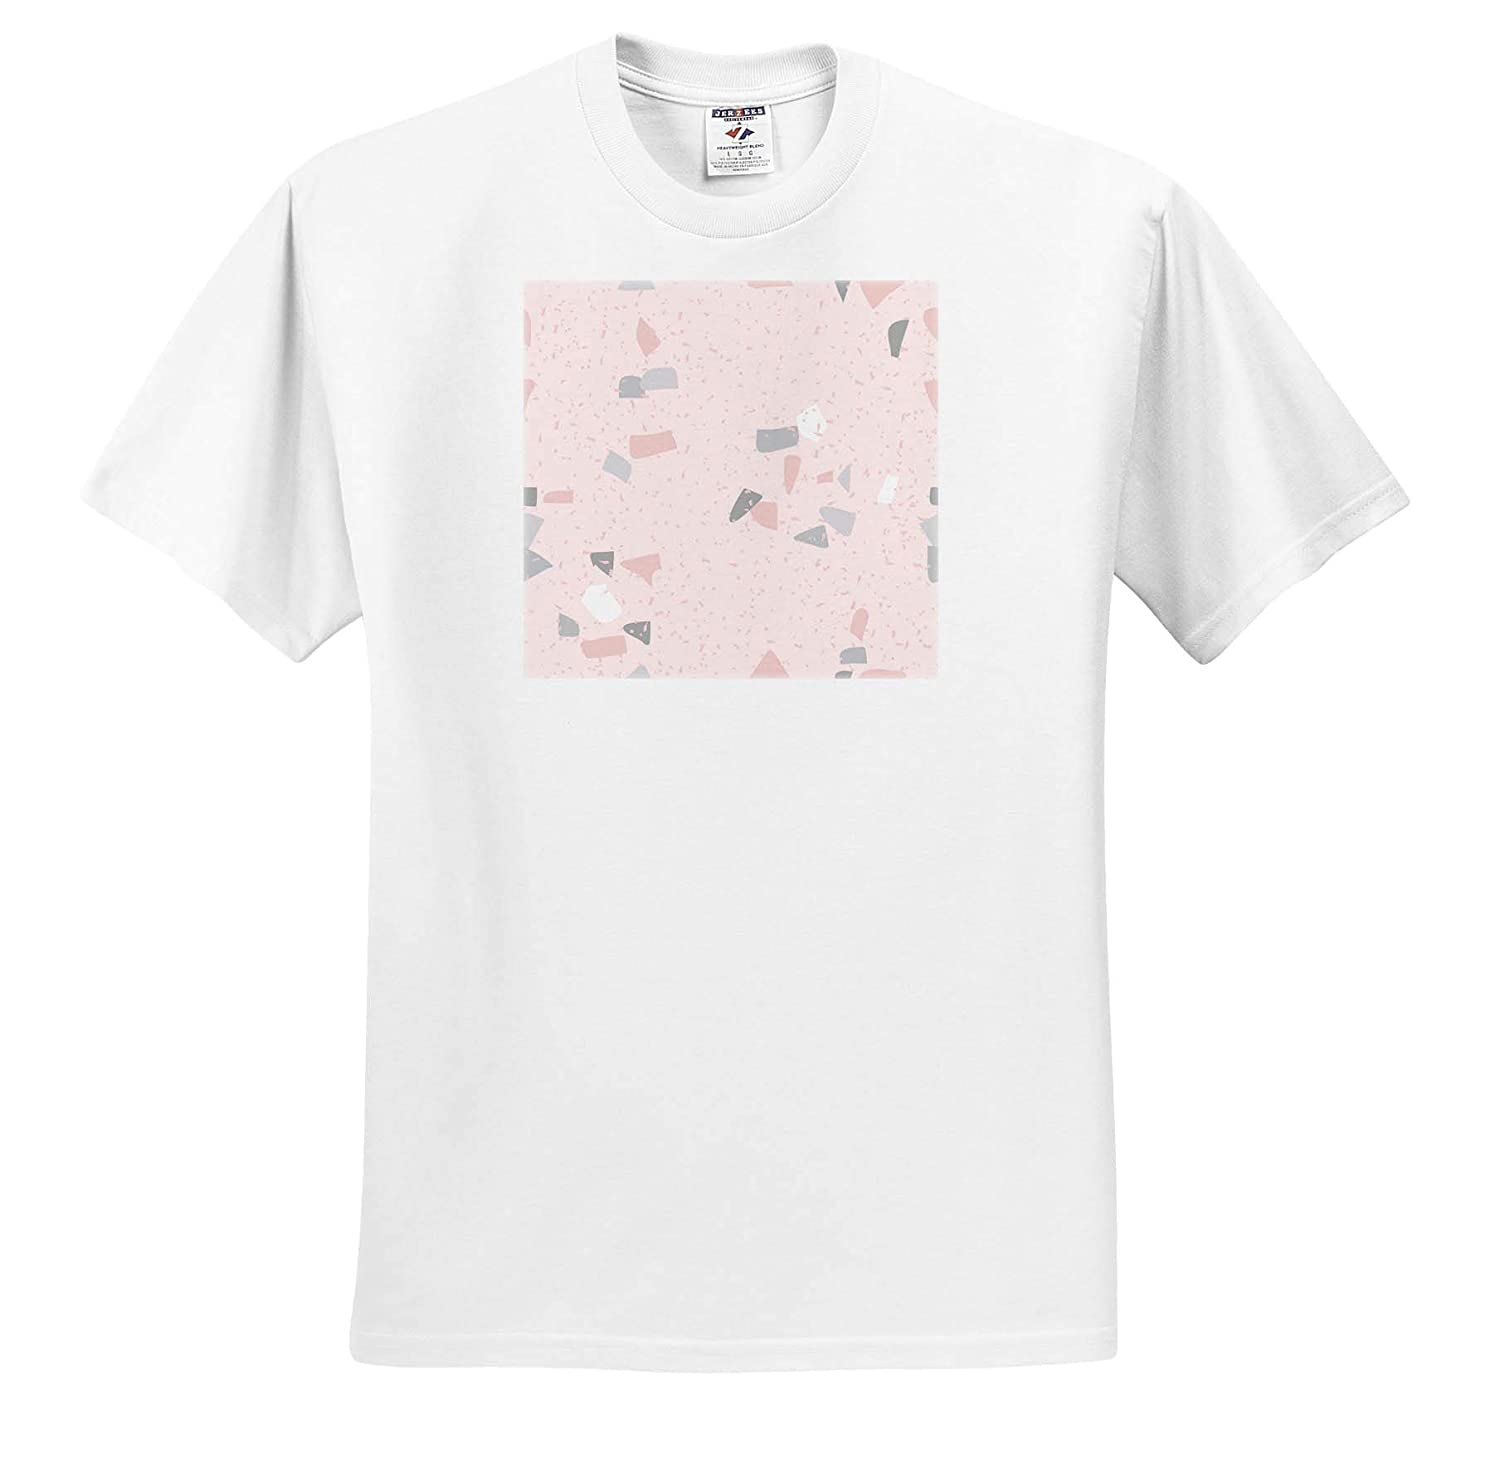 Adult T-Shirt XL 3dRose Uta Naumann Watercolor Pattern ts/_319707 Trend Faux Terrazzo in Pink with Gray and White Spots